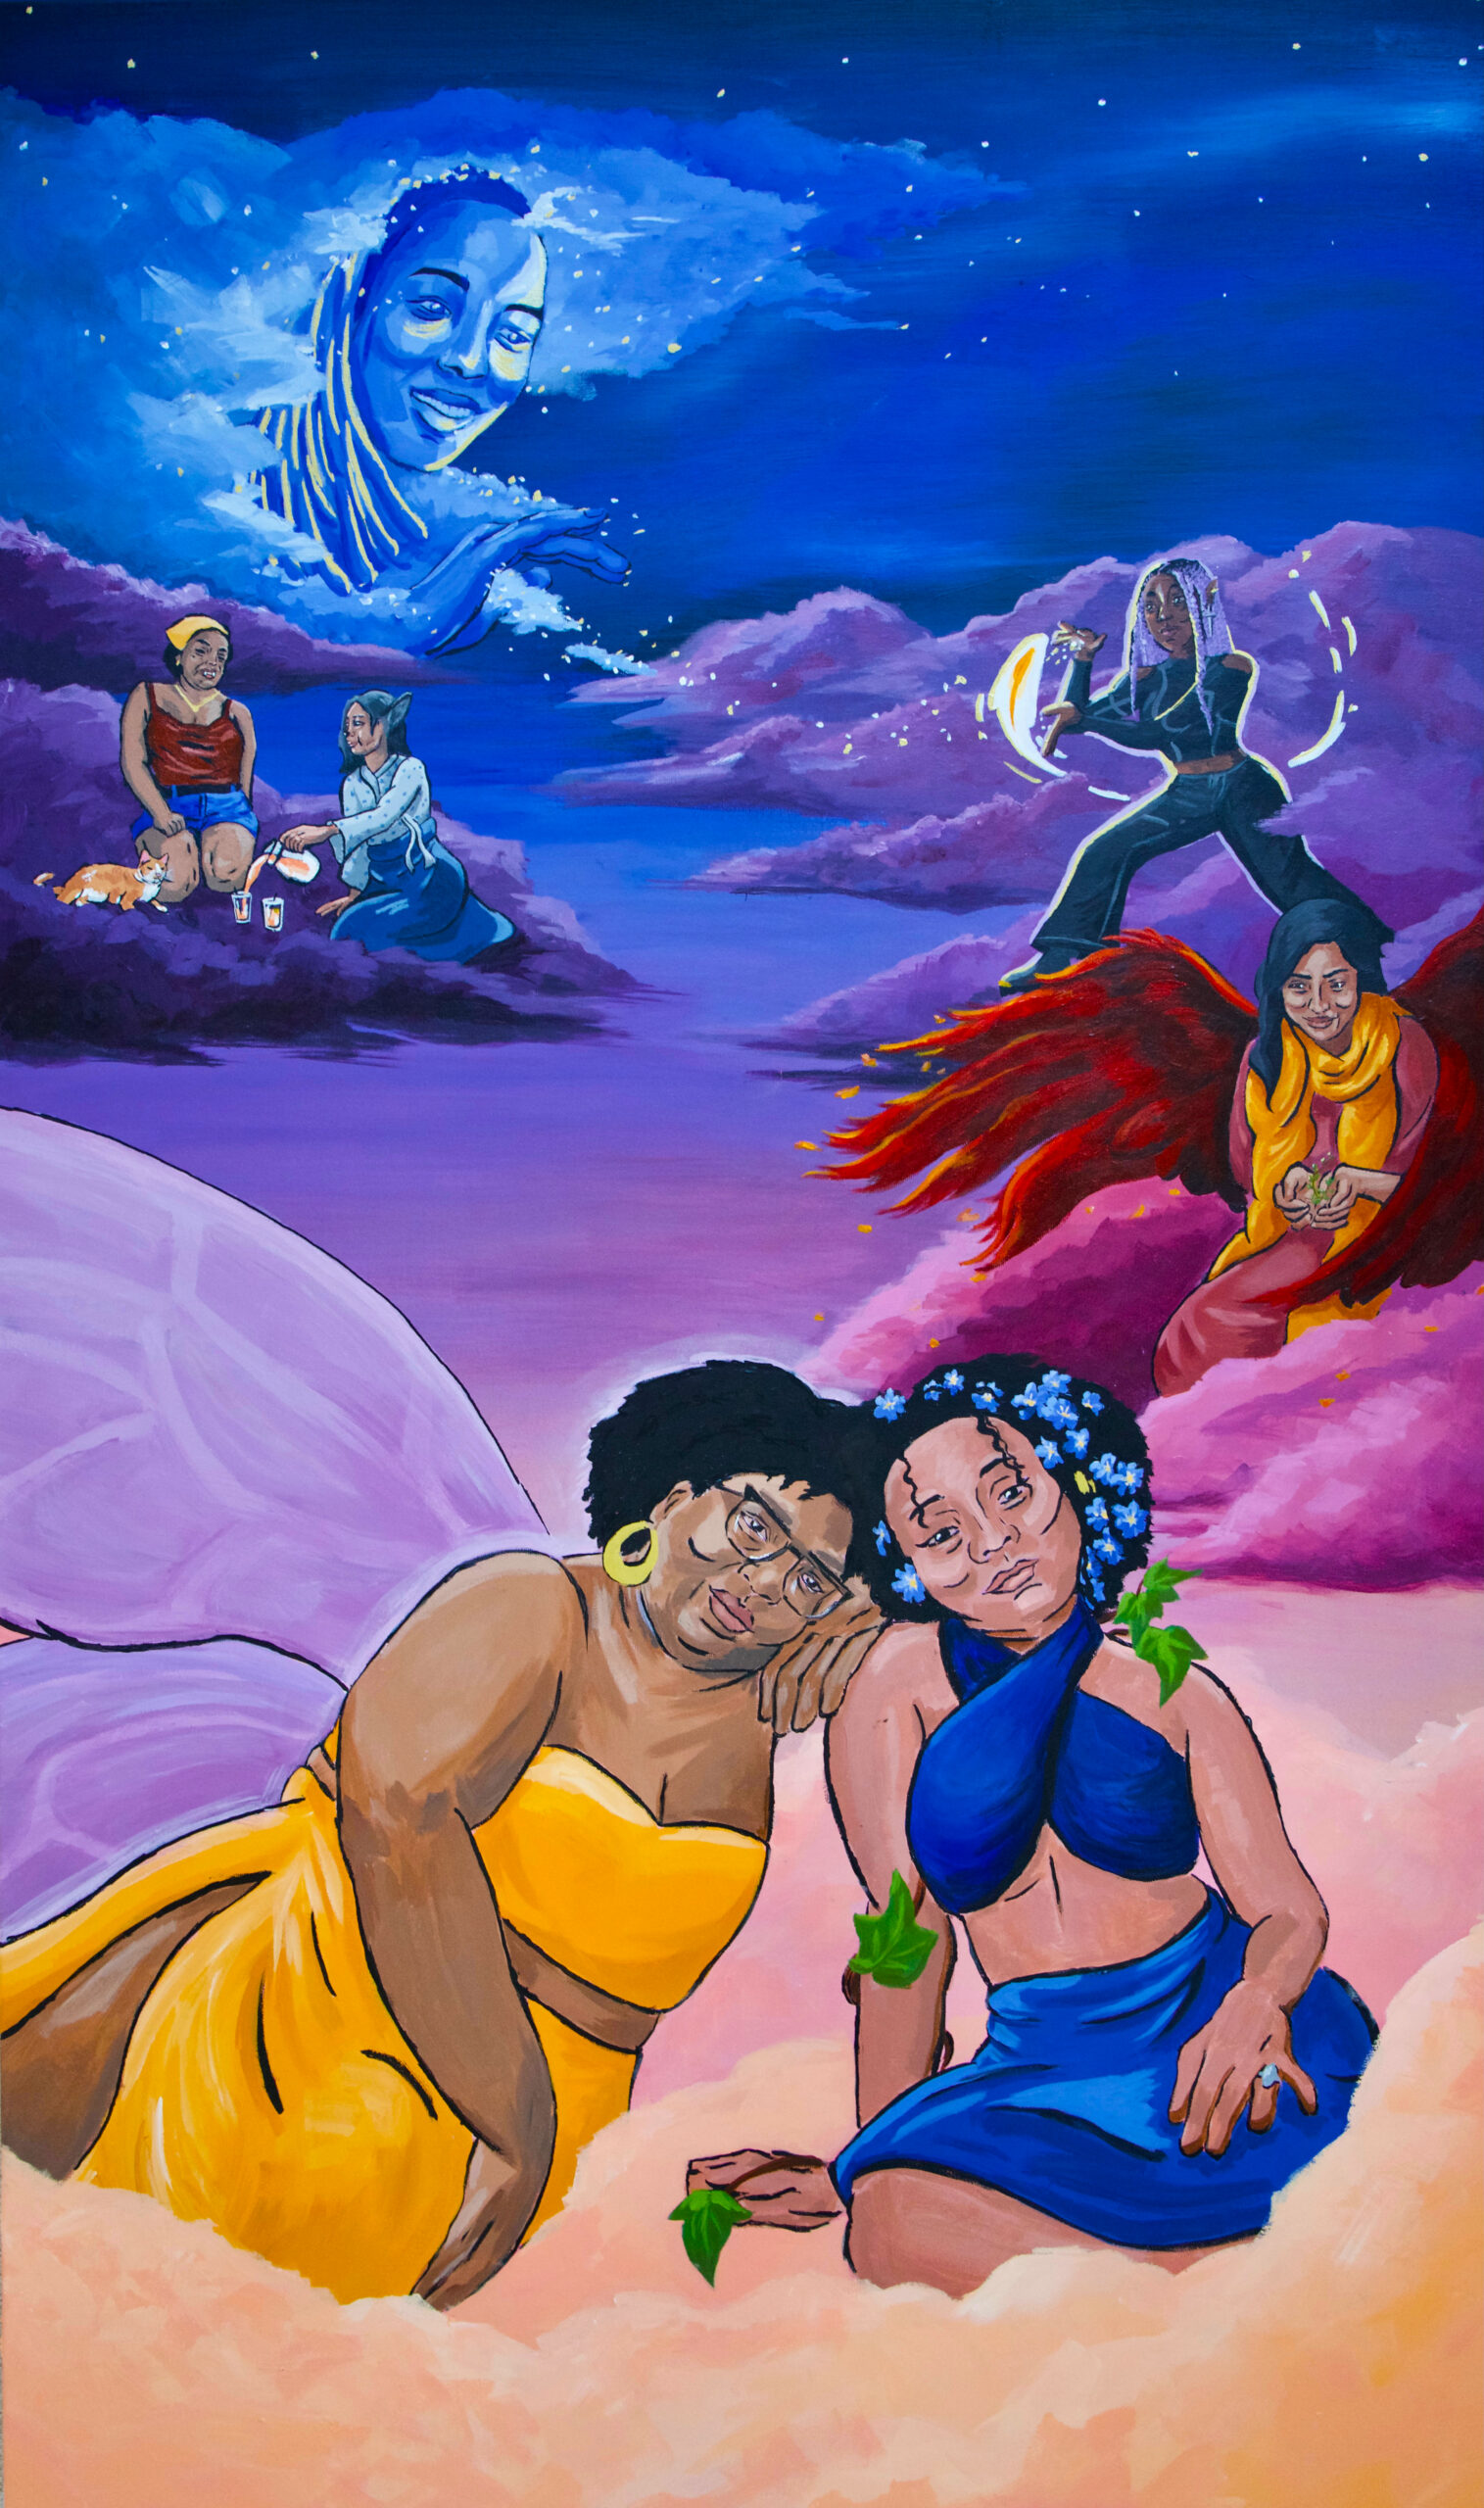 Dr. Laurian Bowles, Adriel Vazquez Martinez, Olivia Ng, Jacina Hollins-Borges, Dr. Sarah Waheed, Jaelyn Taylor, and Lorena James portrayed as fantastical beings in a landscape of skies and clouds.